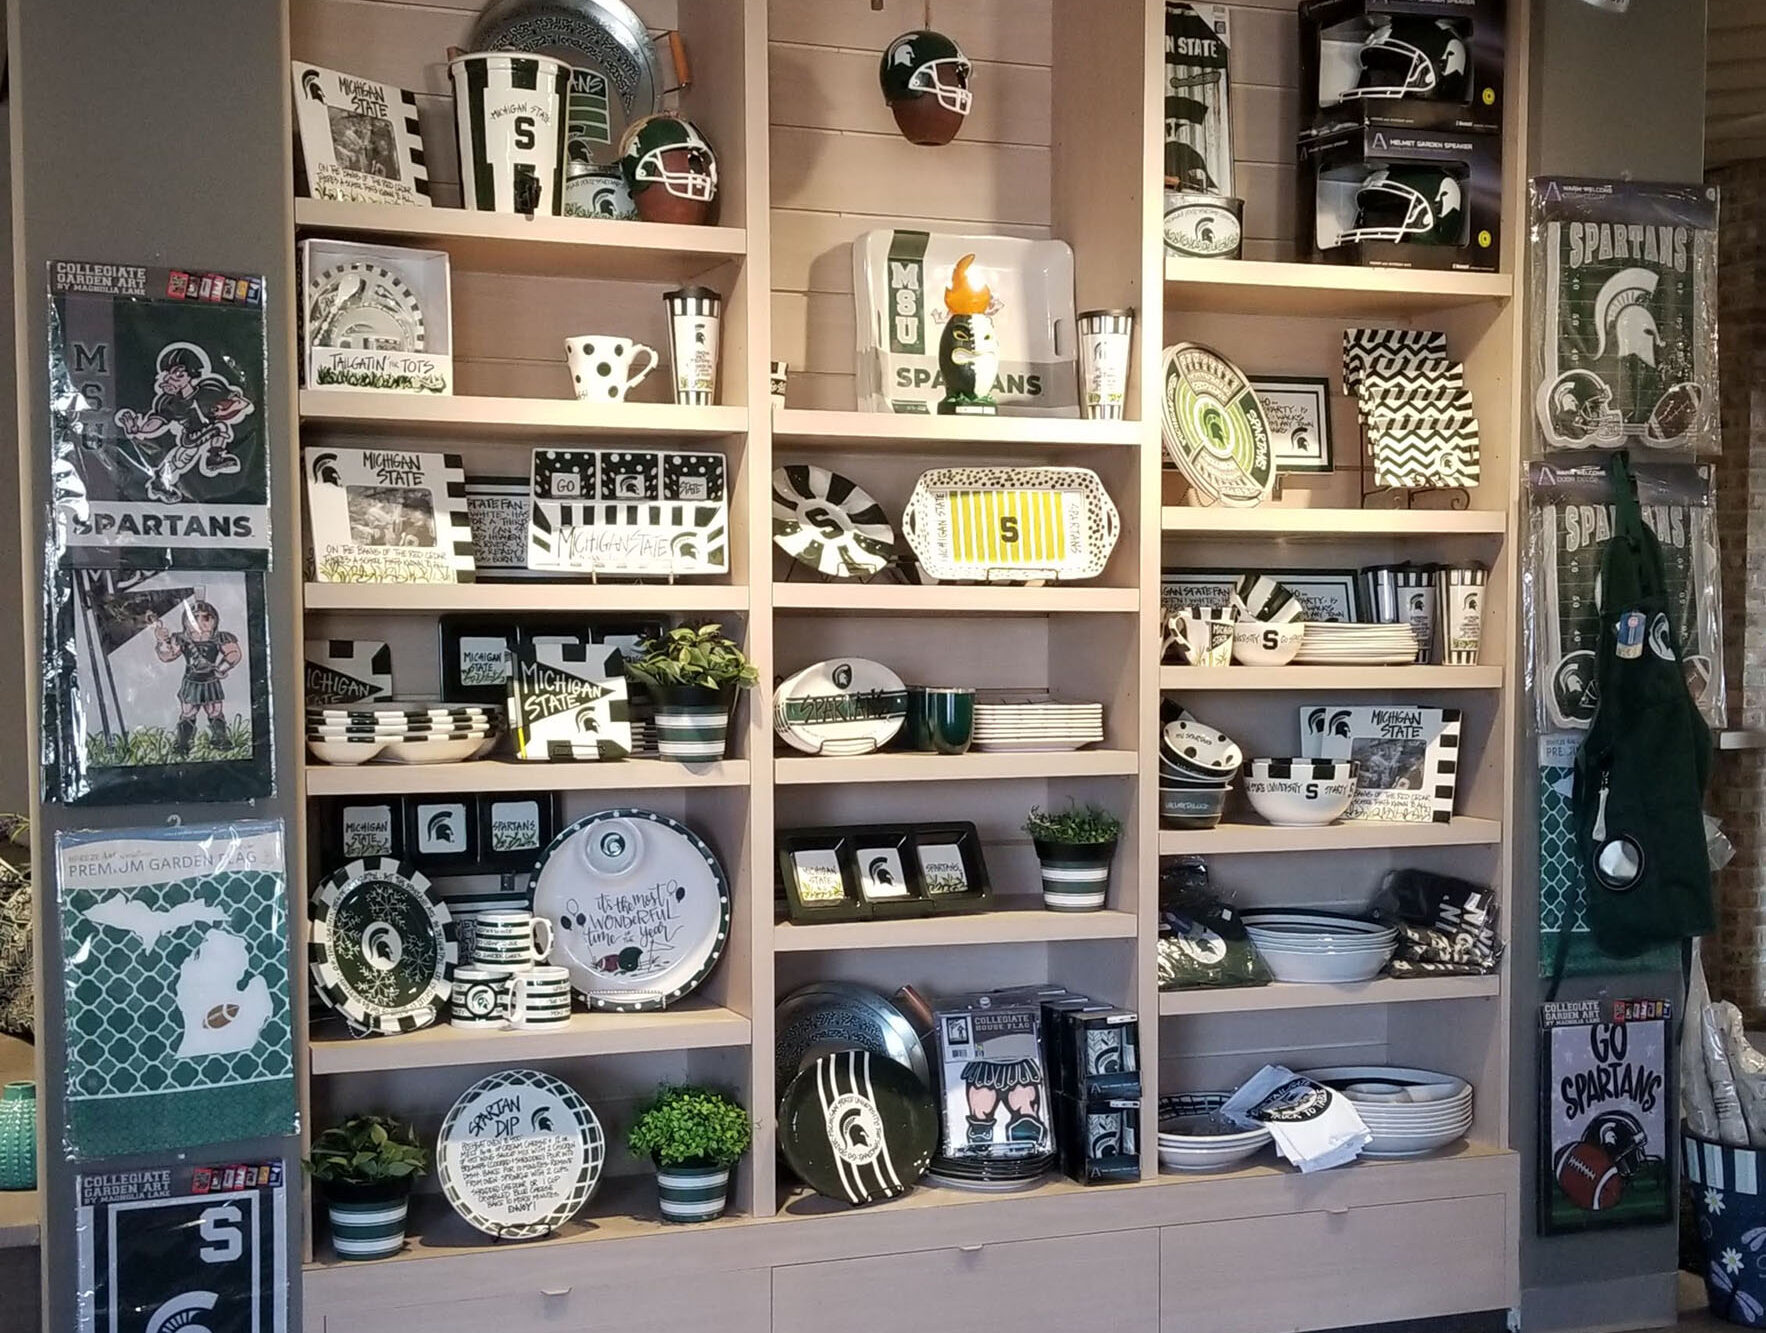 showroom display of football home furnishings and decor at landscaping supply store